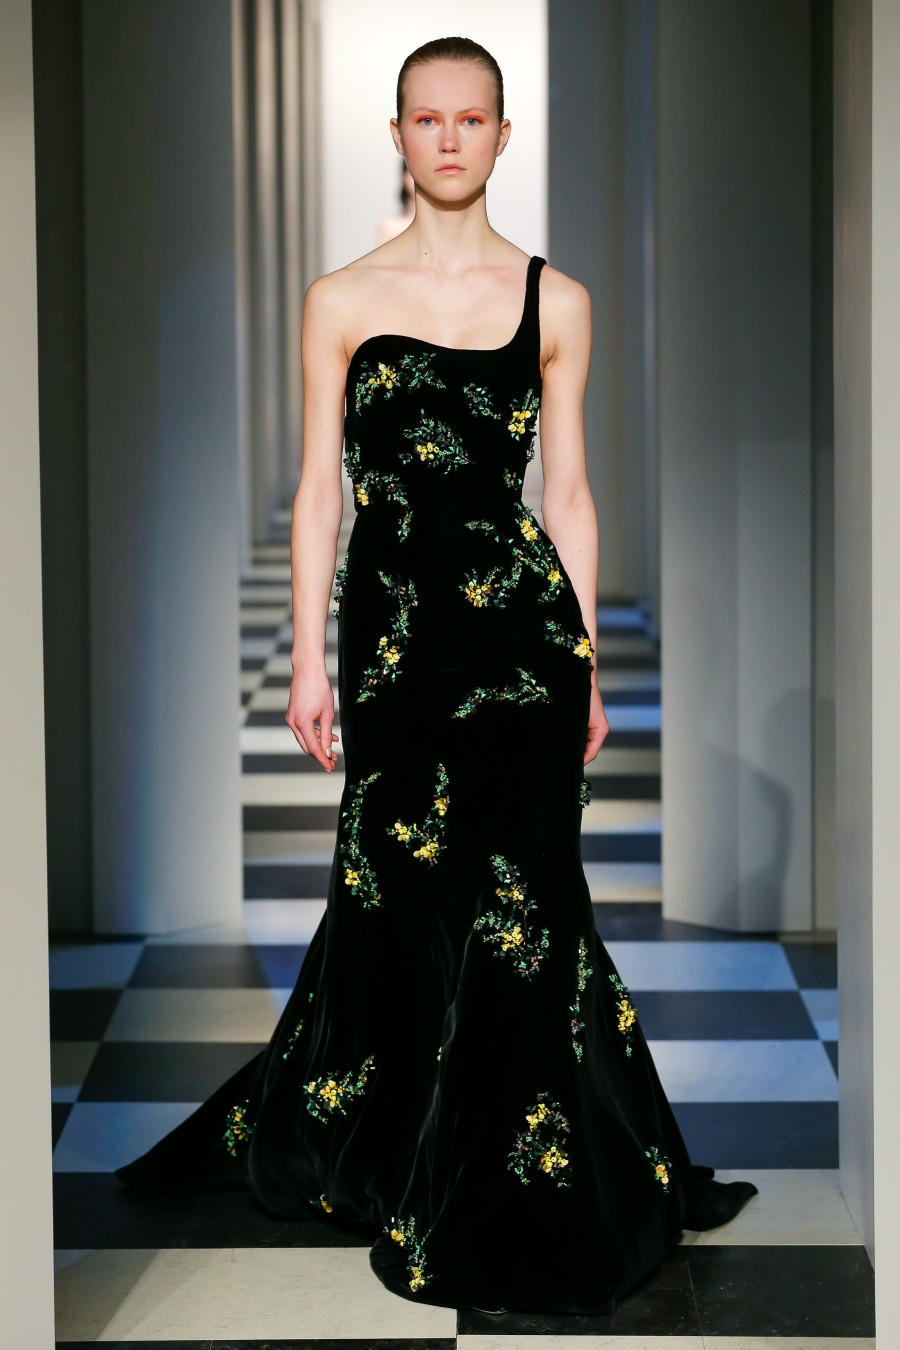 Oscar de la Renta Monse debut - Fall 2017 Runway